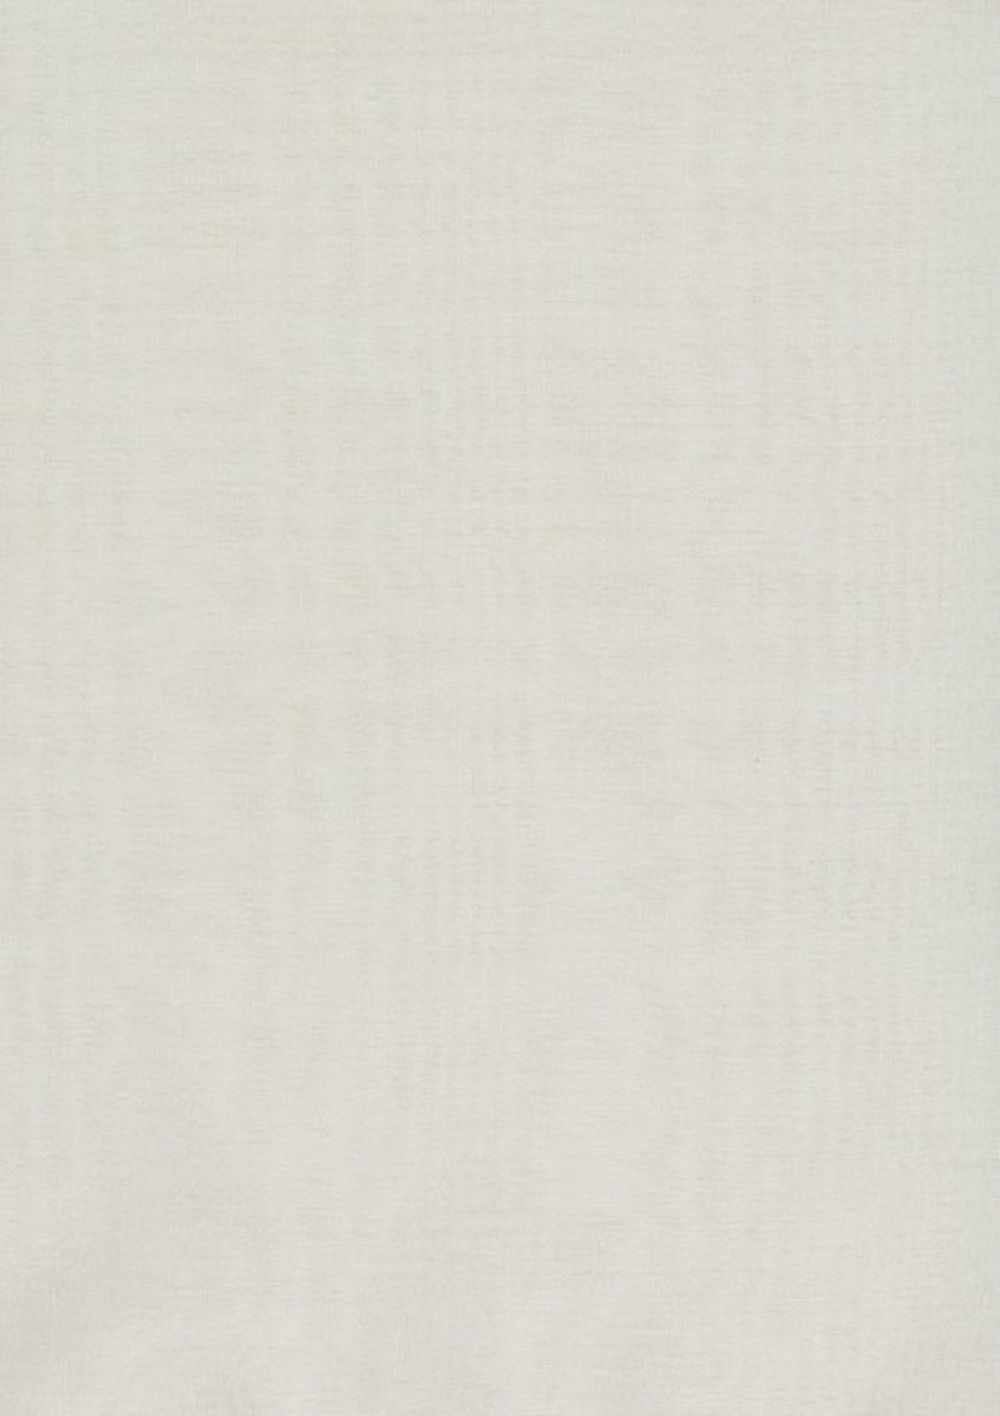 Photo of the fabric Calais FR-One Ivory swatch by FR-One. Use for Sheer Curtains. Style of Plain, Sheer